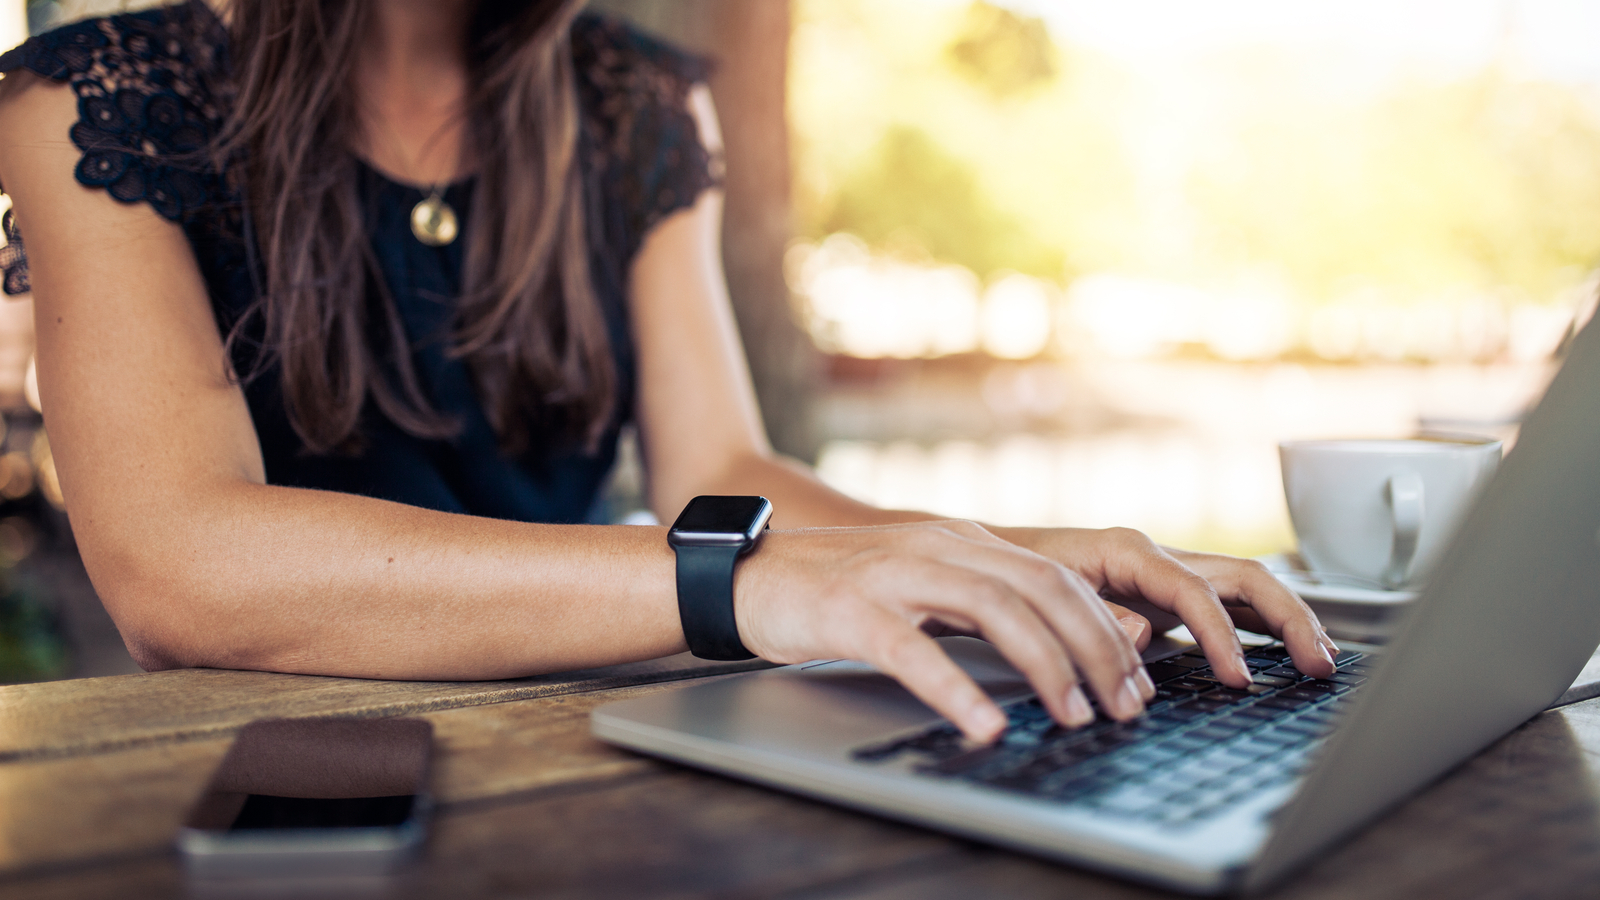 Woman with smart watch using laptop